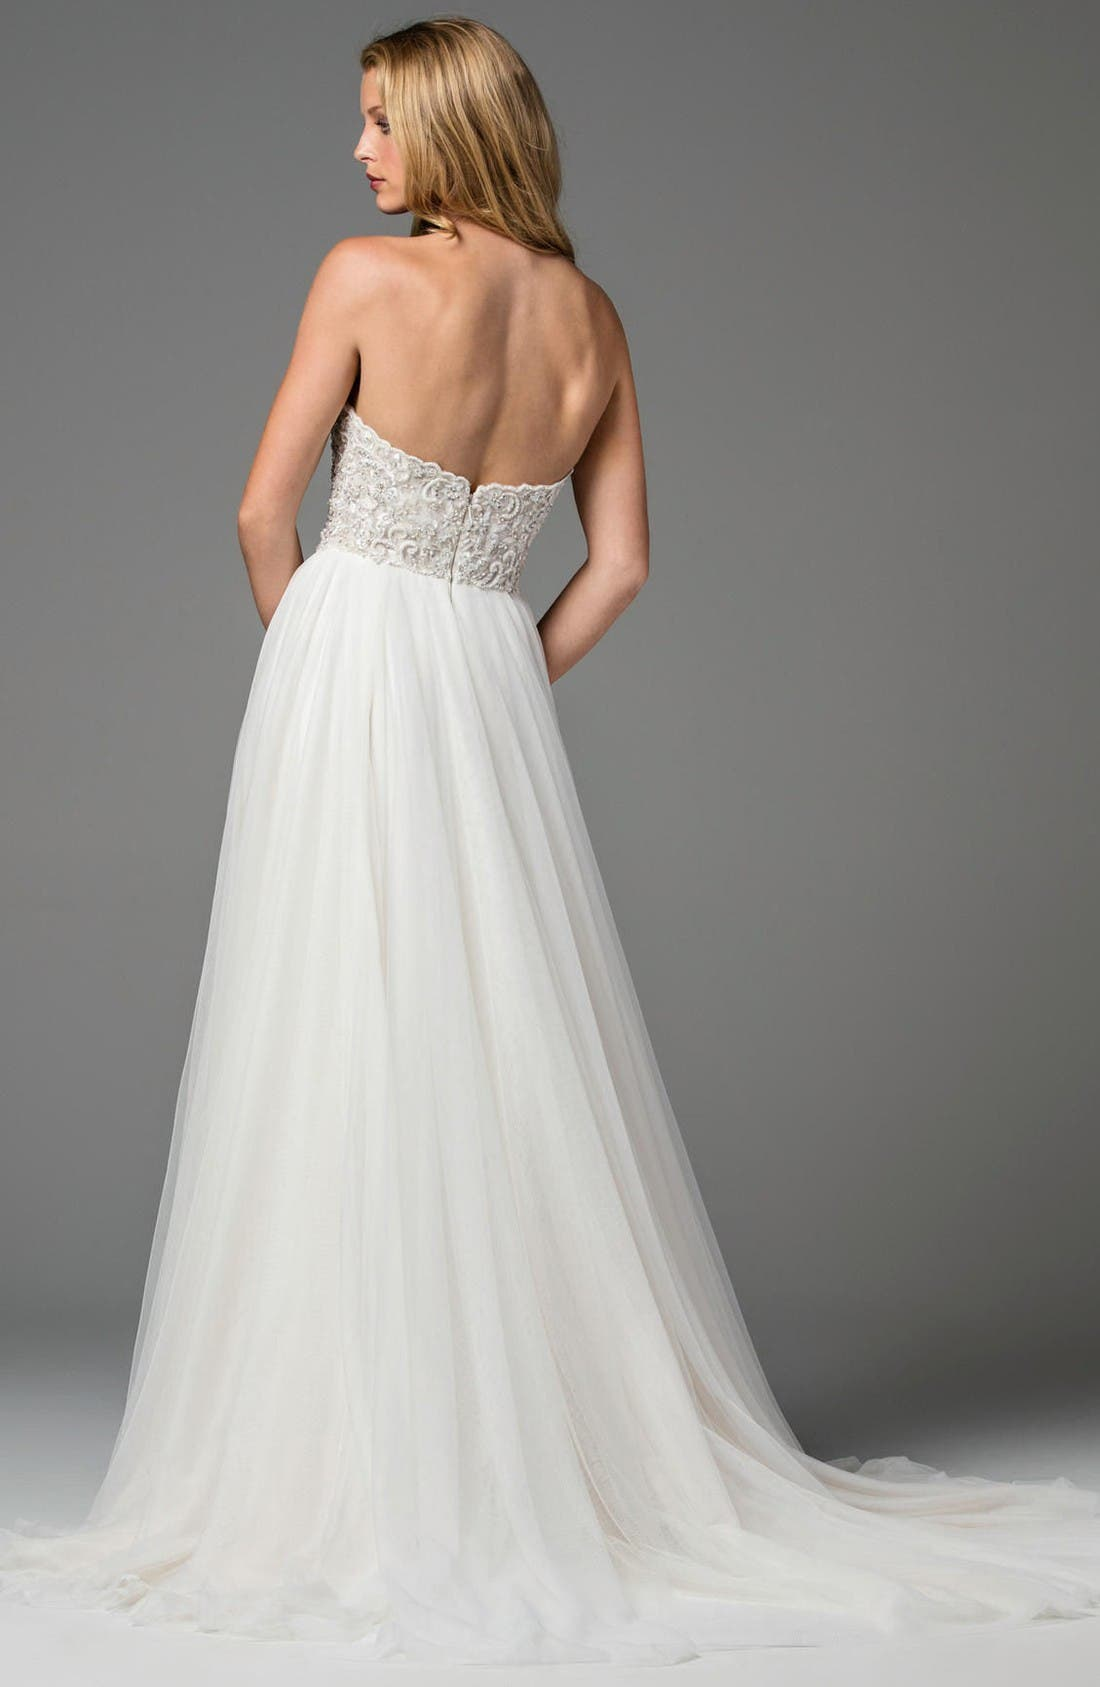 Rosina Embellished Strapless Lace & Tulle A-Line Gown,                             Alternate thumbnail 2, color,                             Reisling